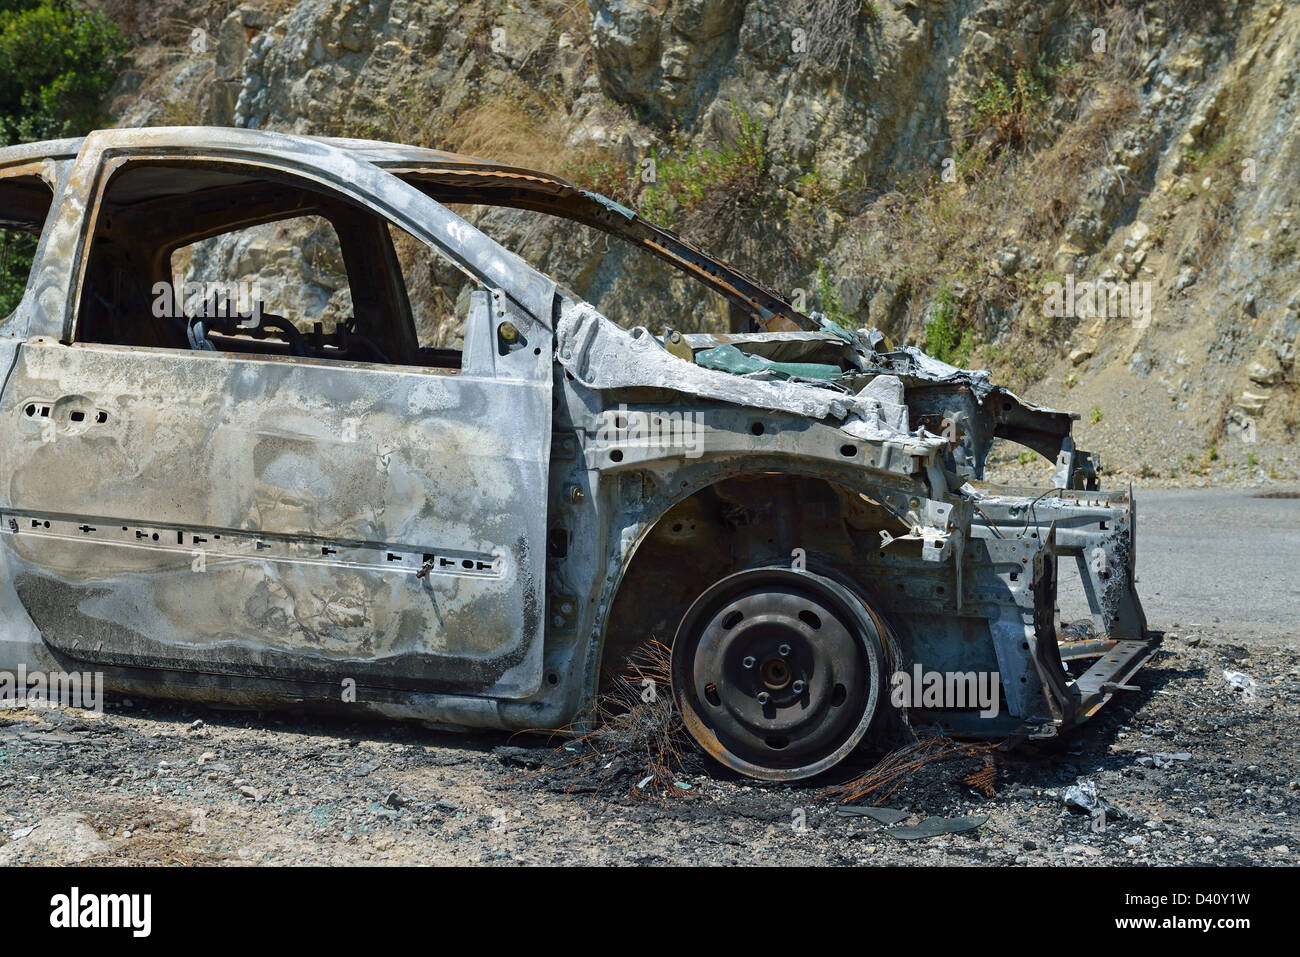 Abandoned burnt out vehicle wreck - Stock Image